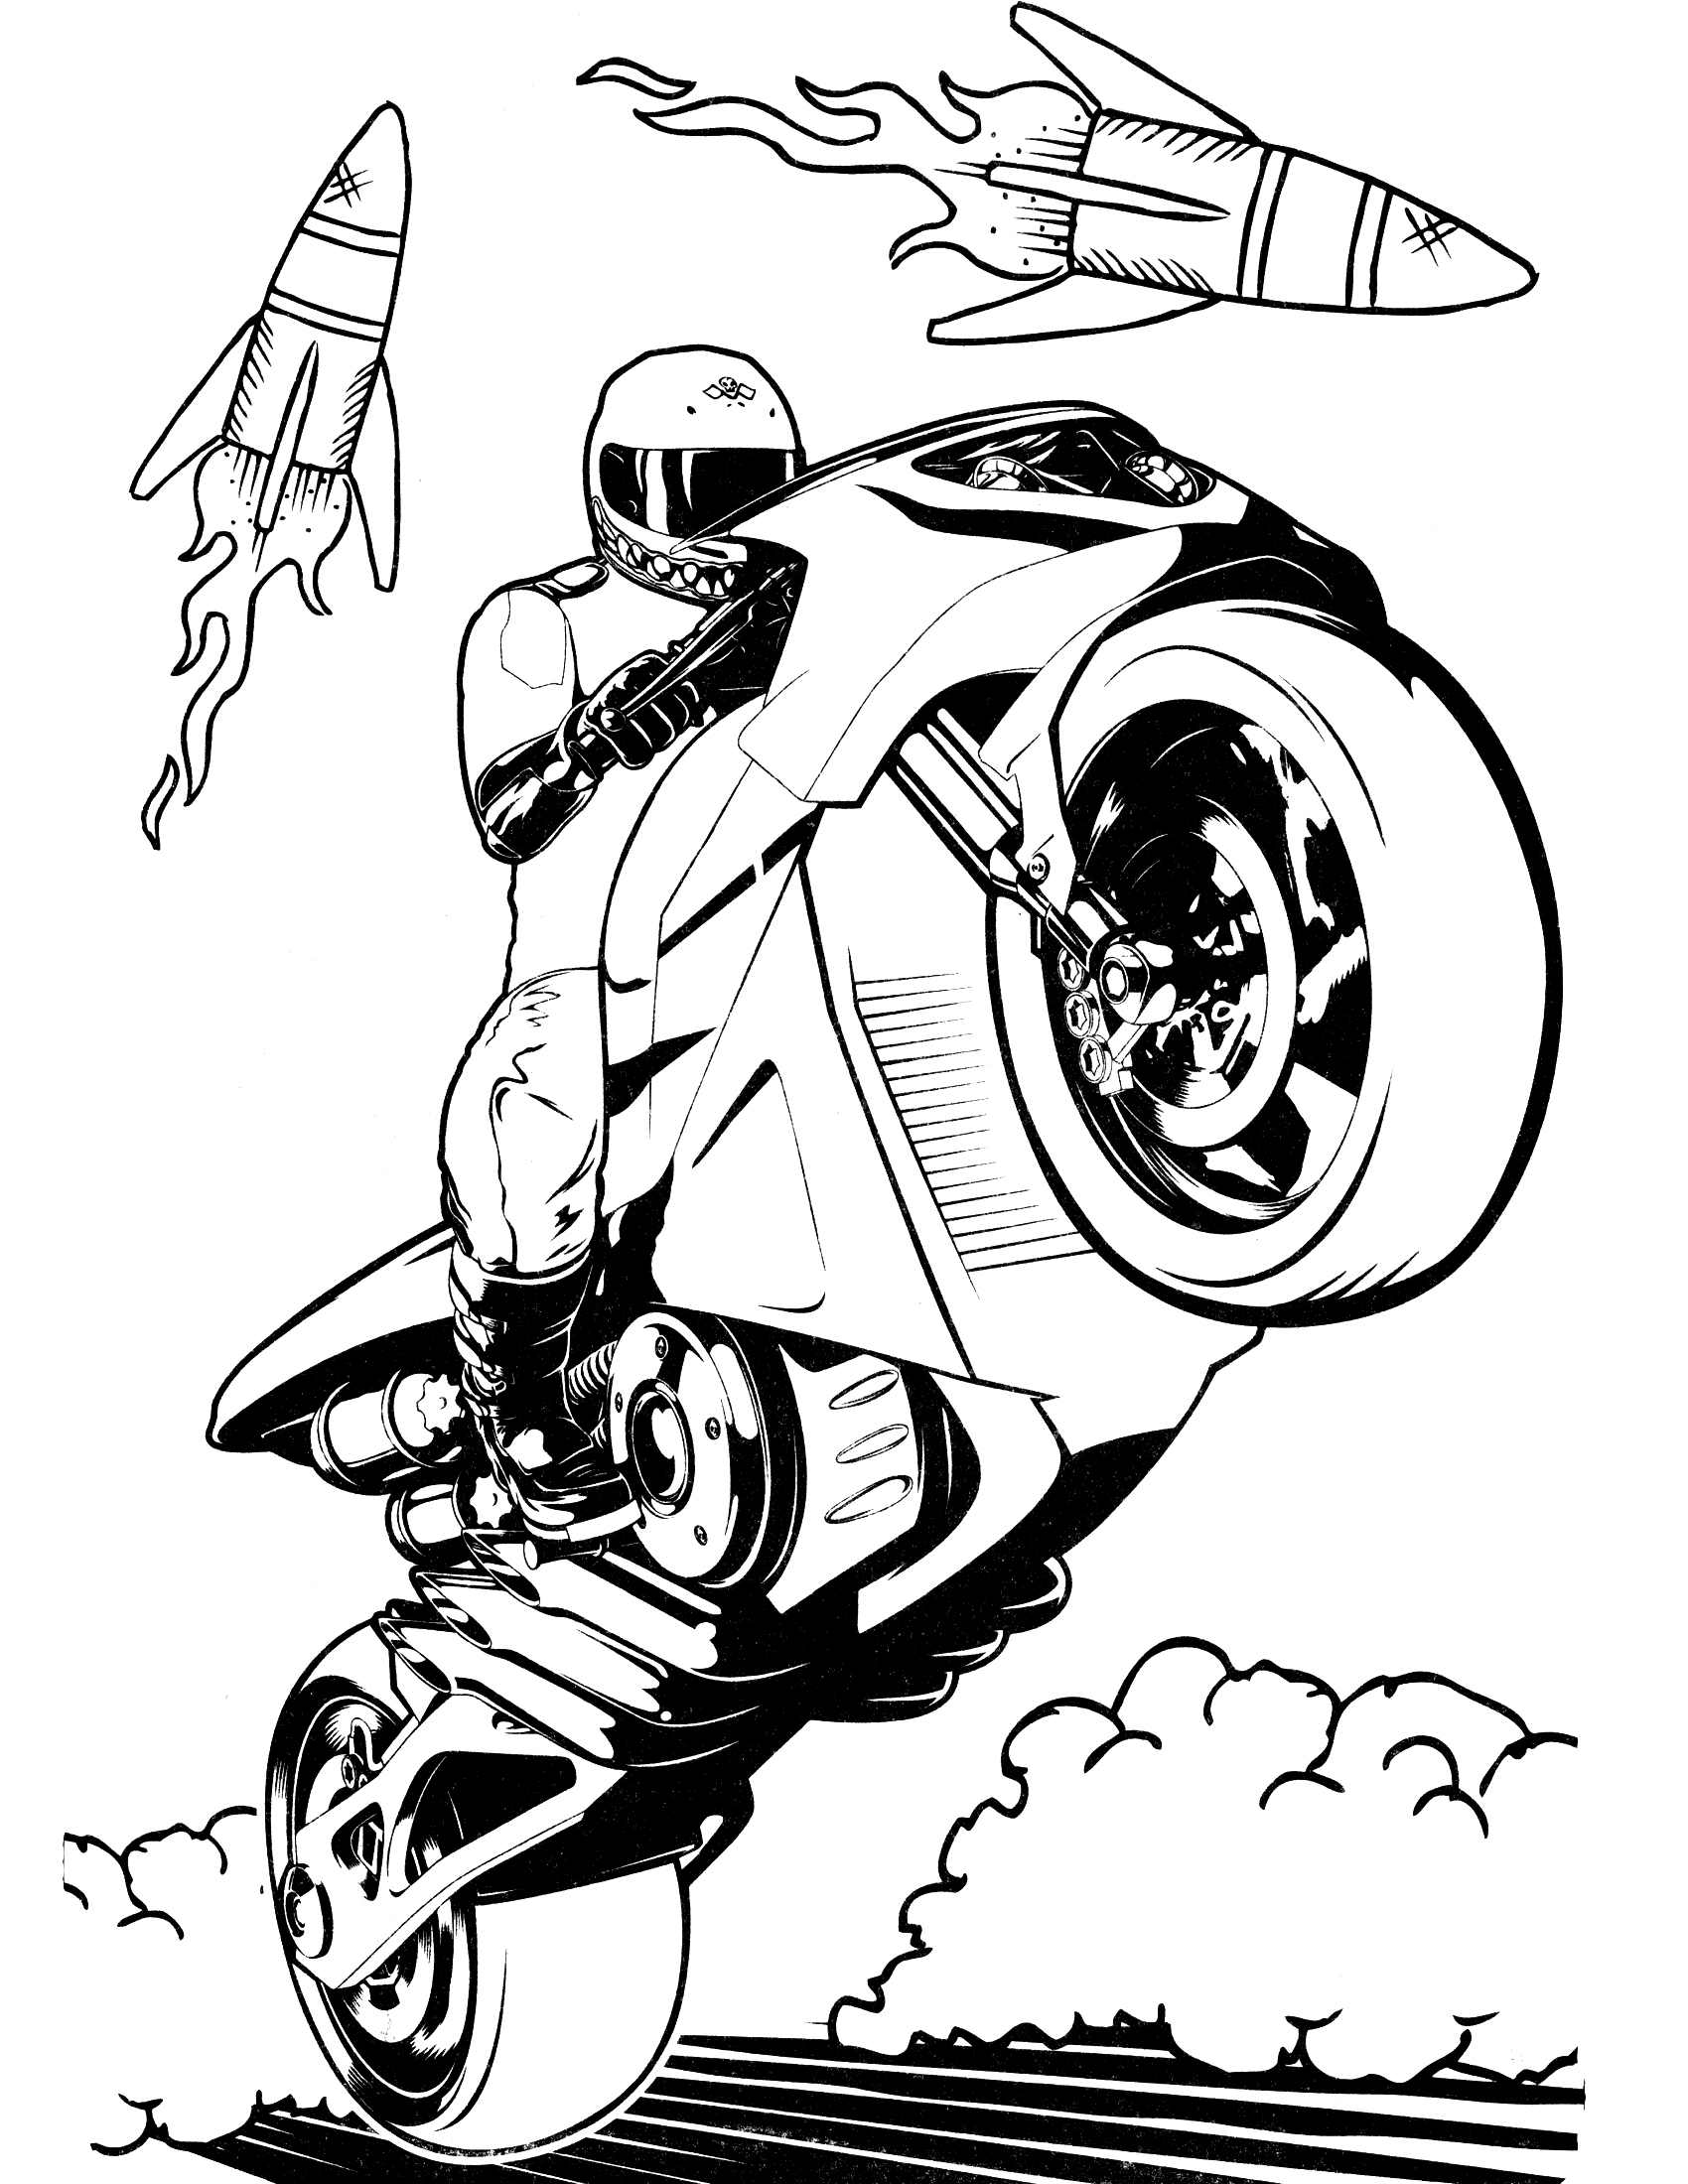 hot wheels cars pictures to color hot wheels coloring pages set 4 a huge collection of to cars hot wheels color pictures